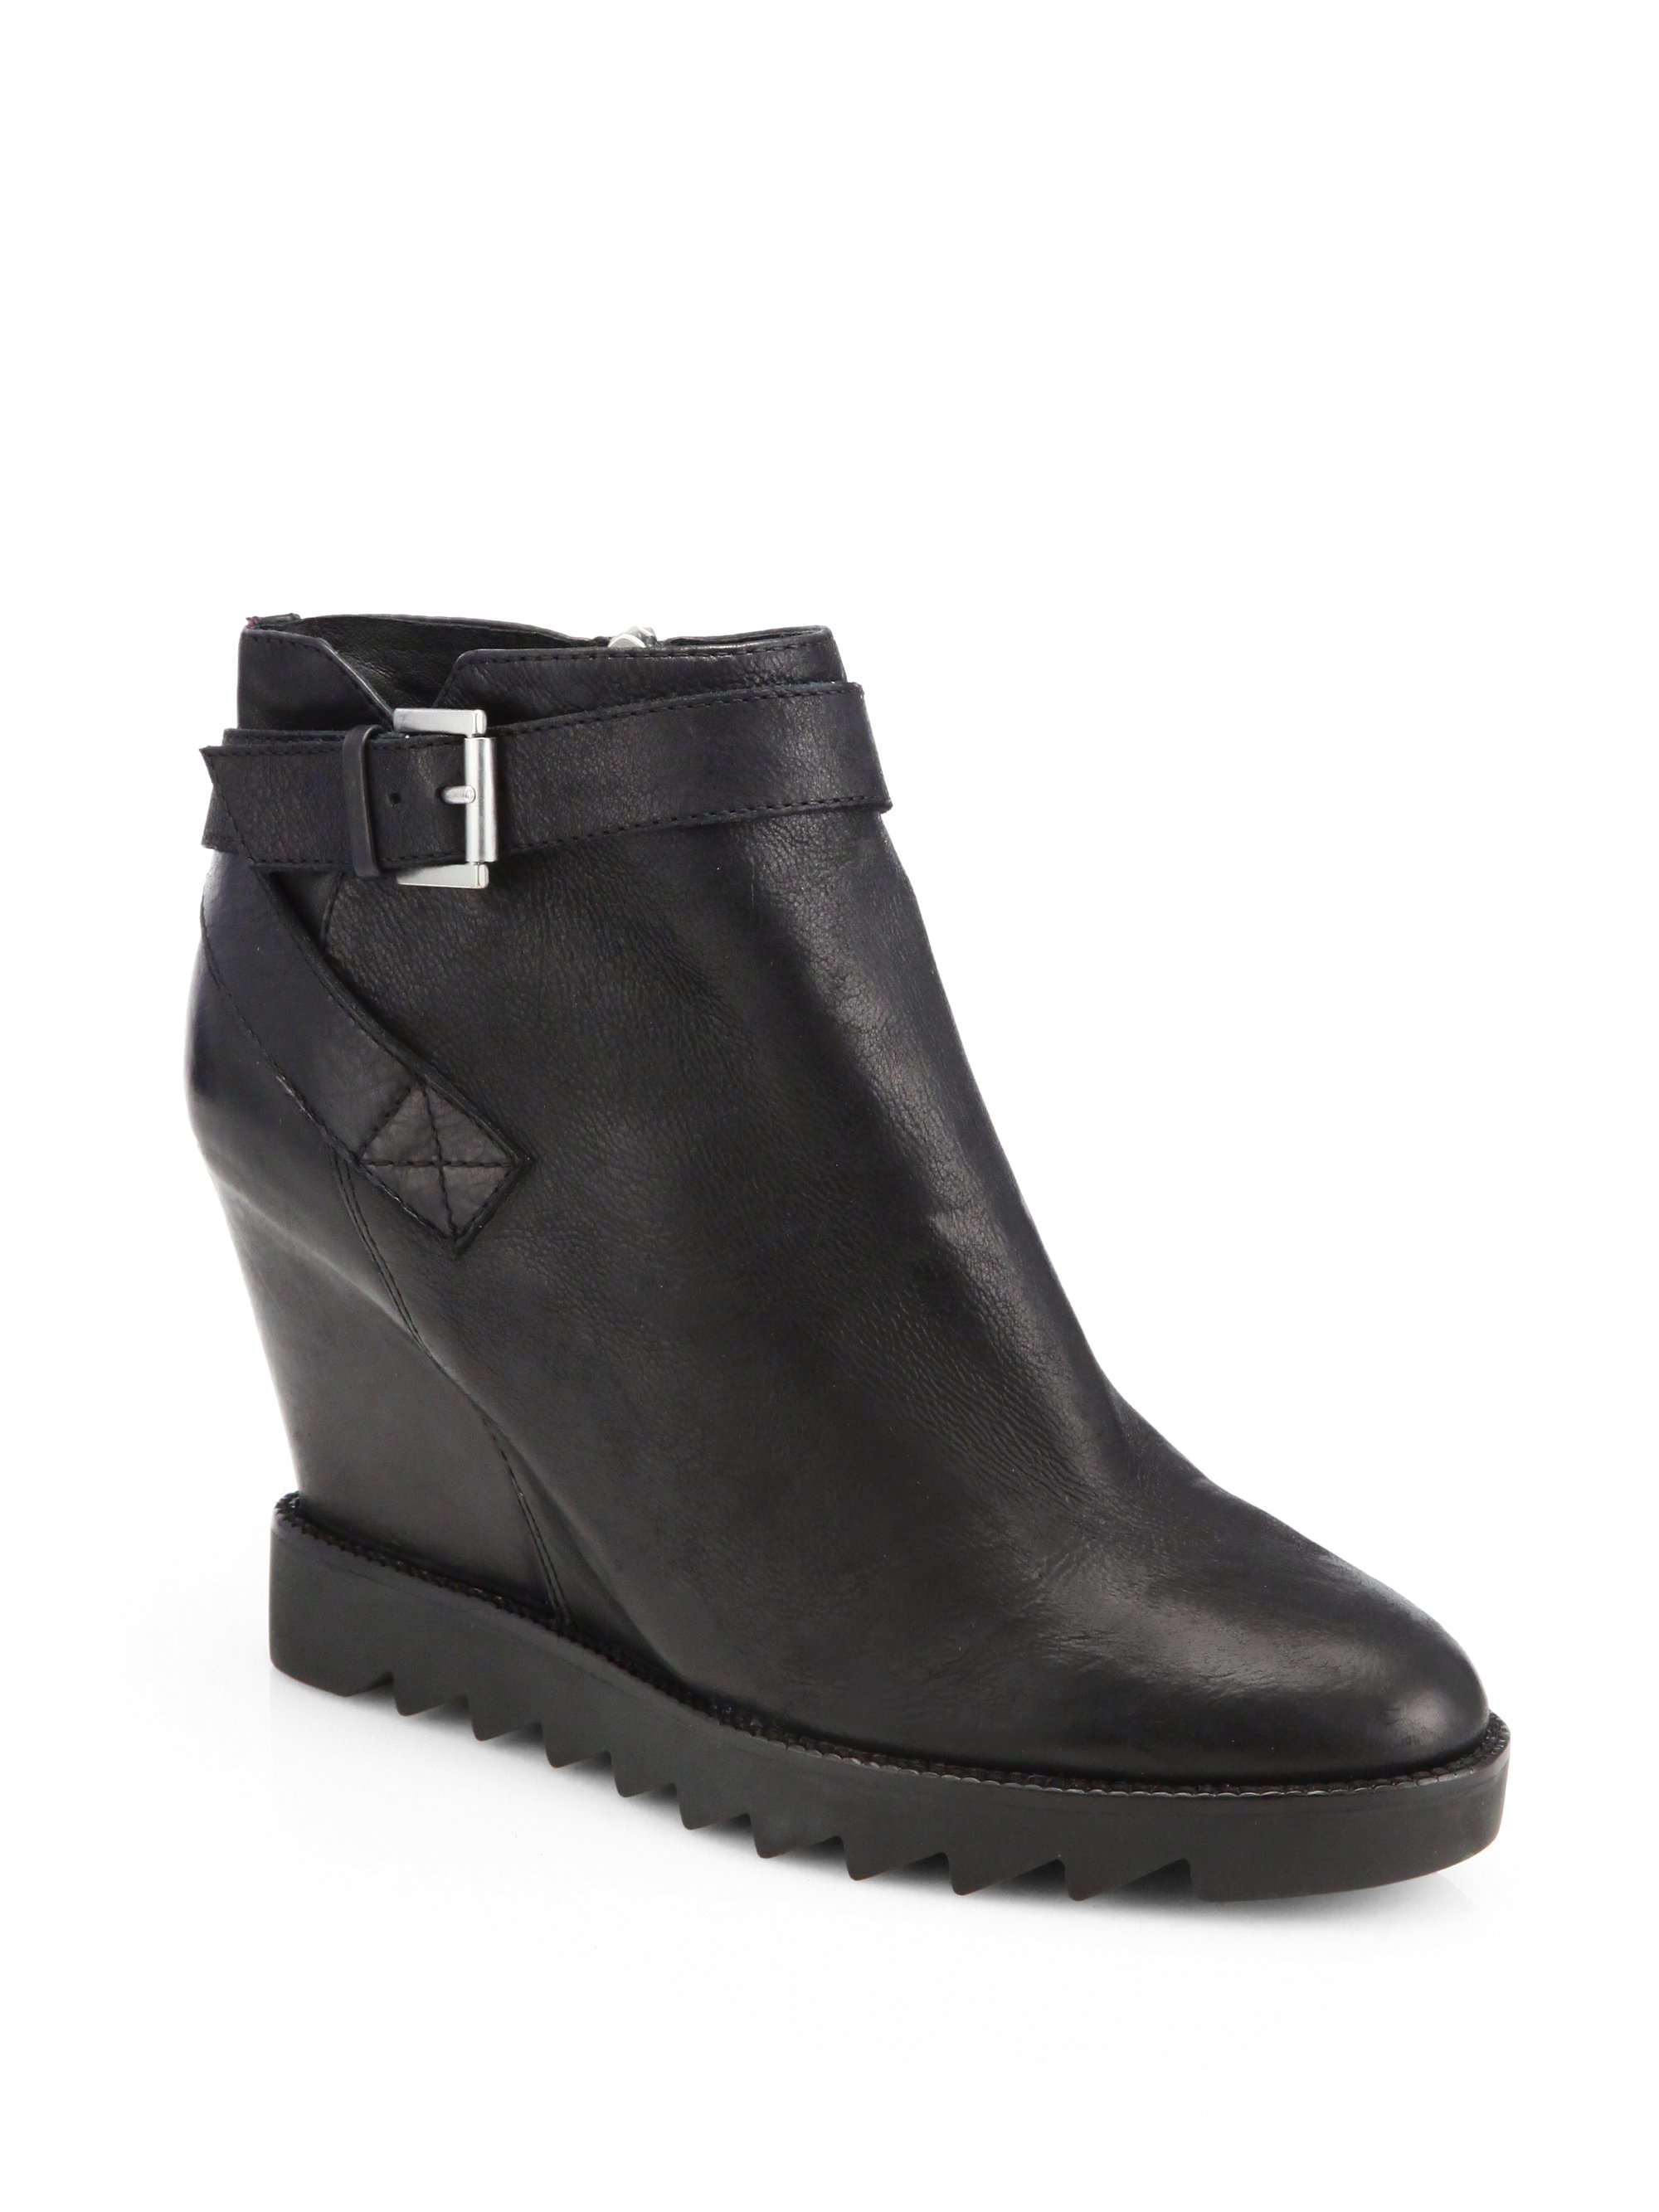 Ash Iona Leather Wedge Ankle Boots In Black Lyst